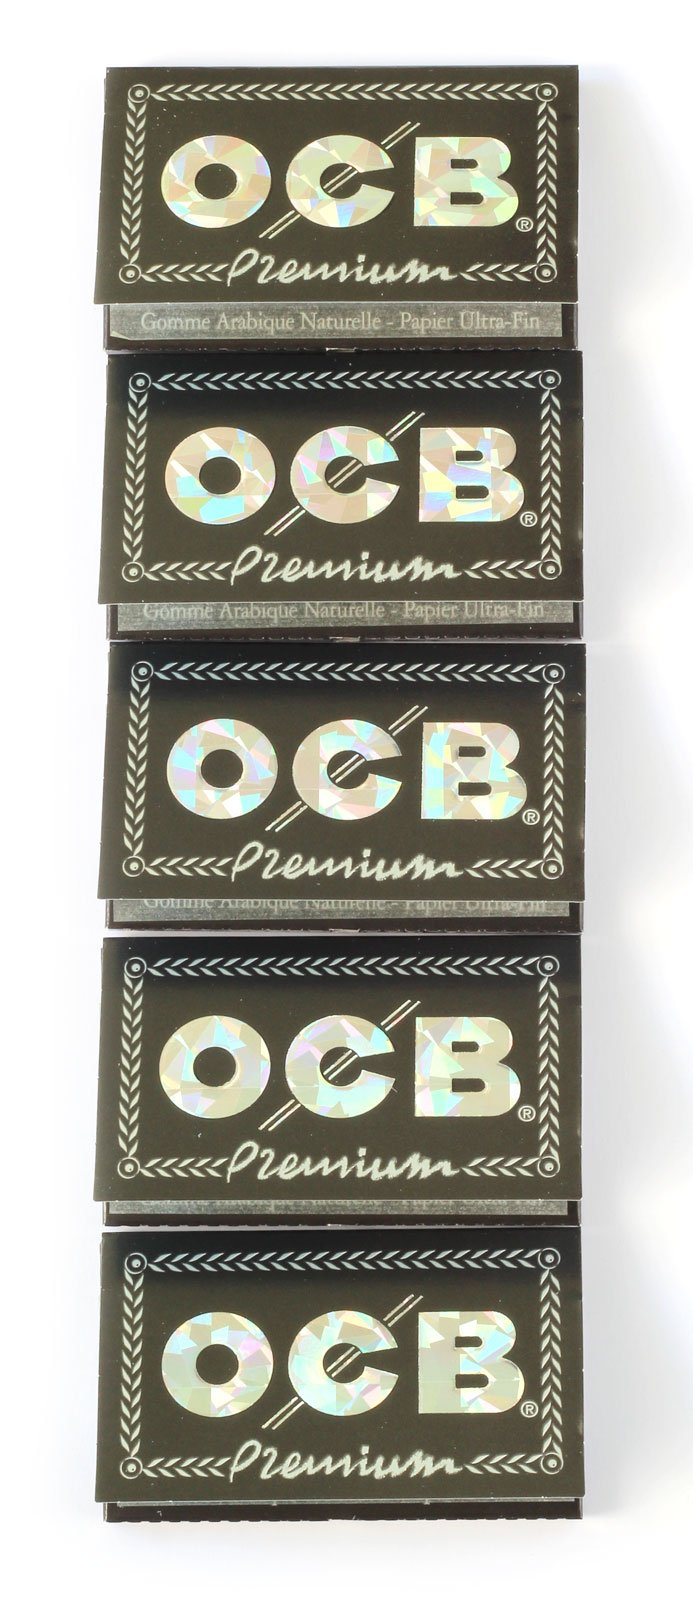 5 booklets x OCB Premium Black Double Rolling Paper - 500 Papers